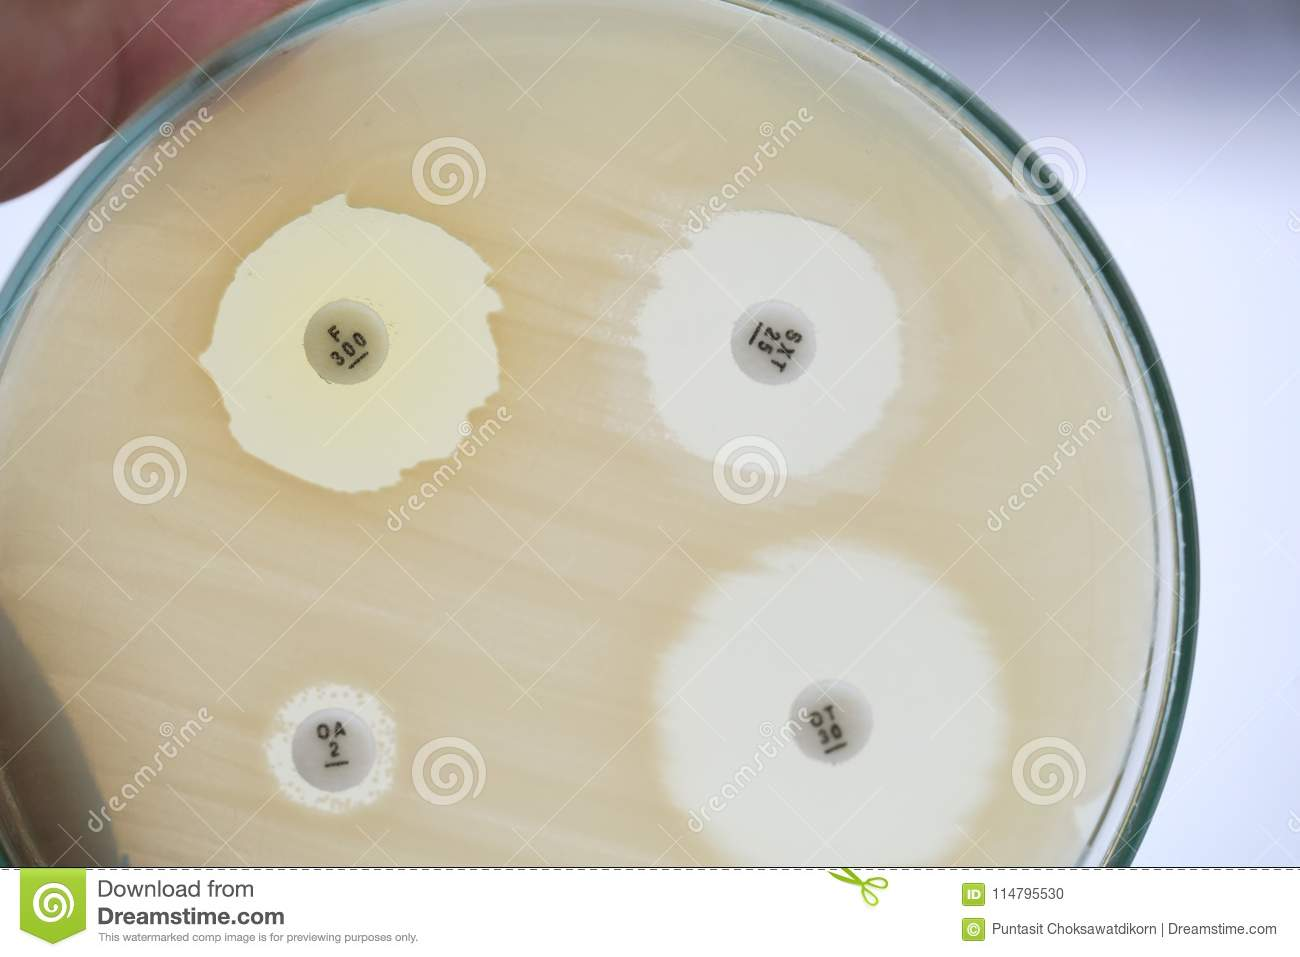 Antibiotic sensitivity of bacteria by means of diffusion test is